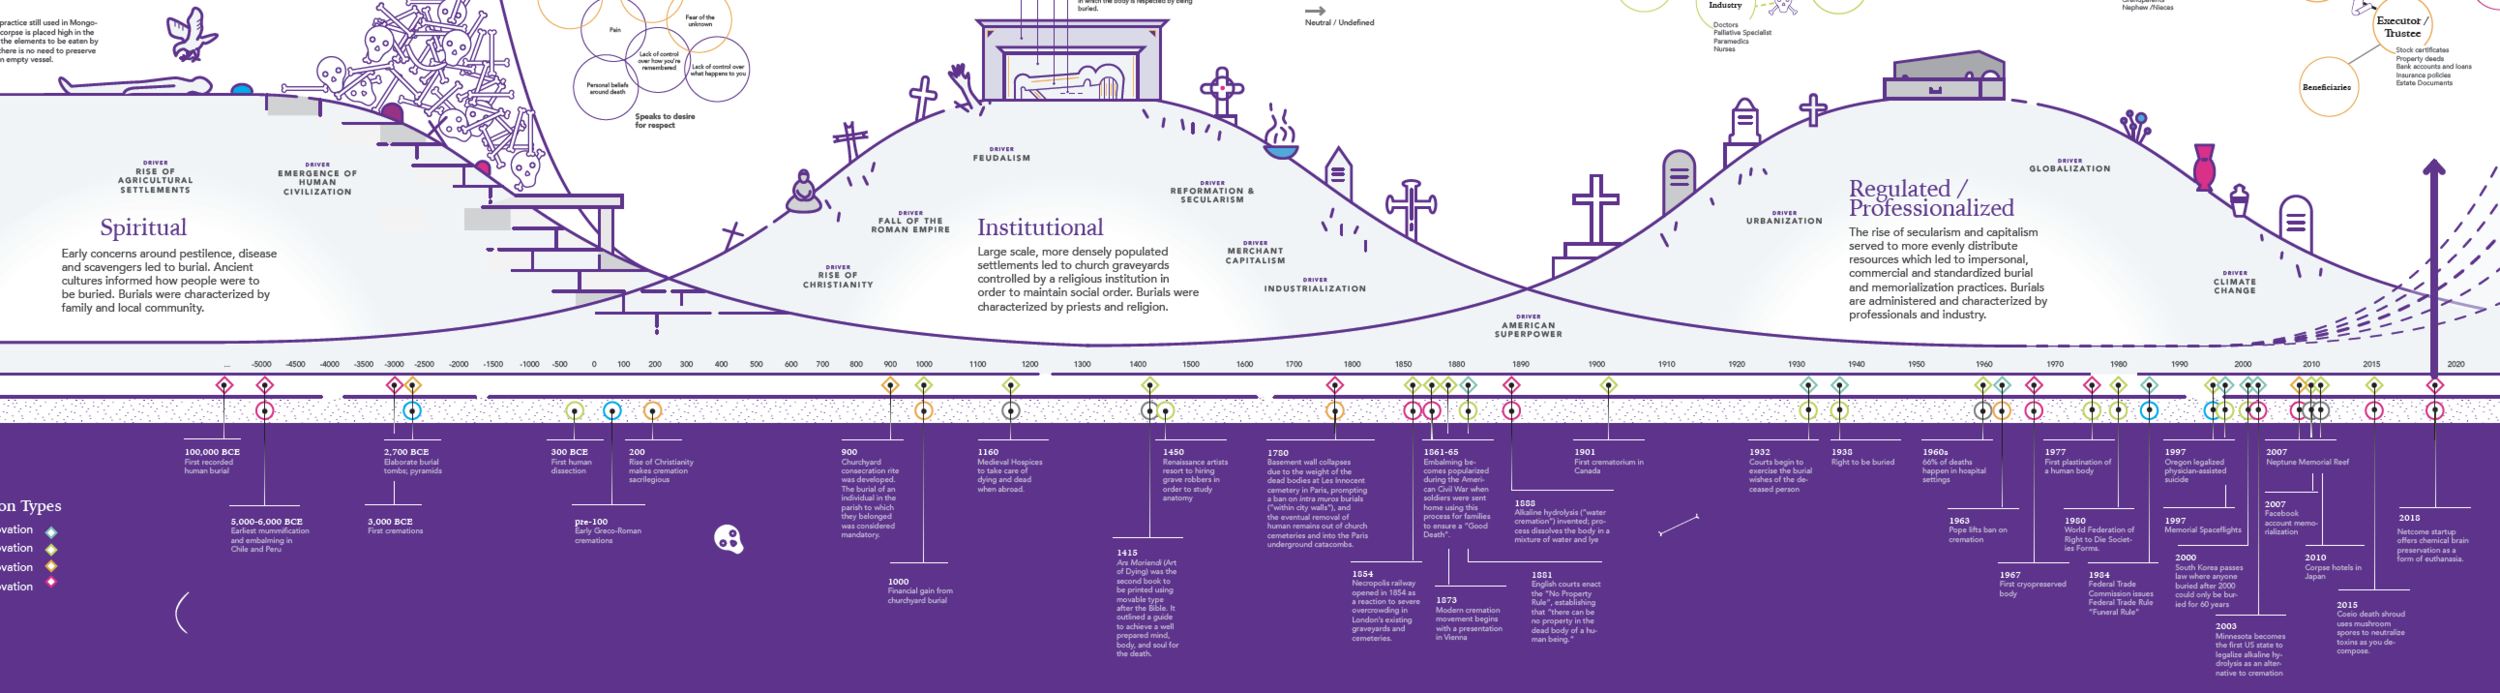 """Excerpt from the gigamap showing a multi-horizon timeline, chronicling the death """"industry"""" since the dawn of time to the present. The timeline ends with an exploration of potential futures."""